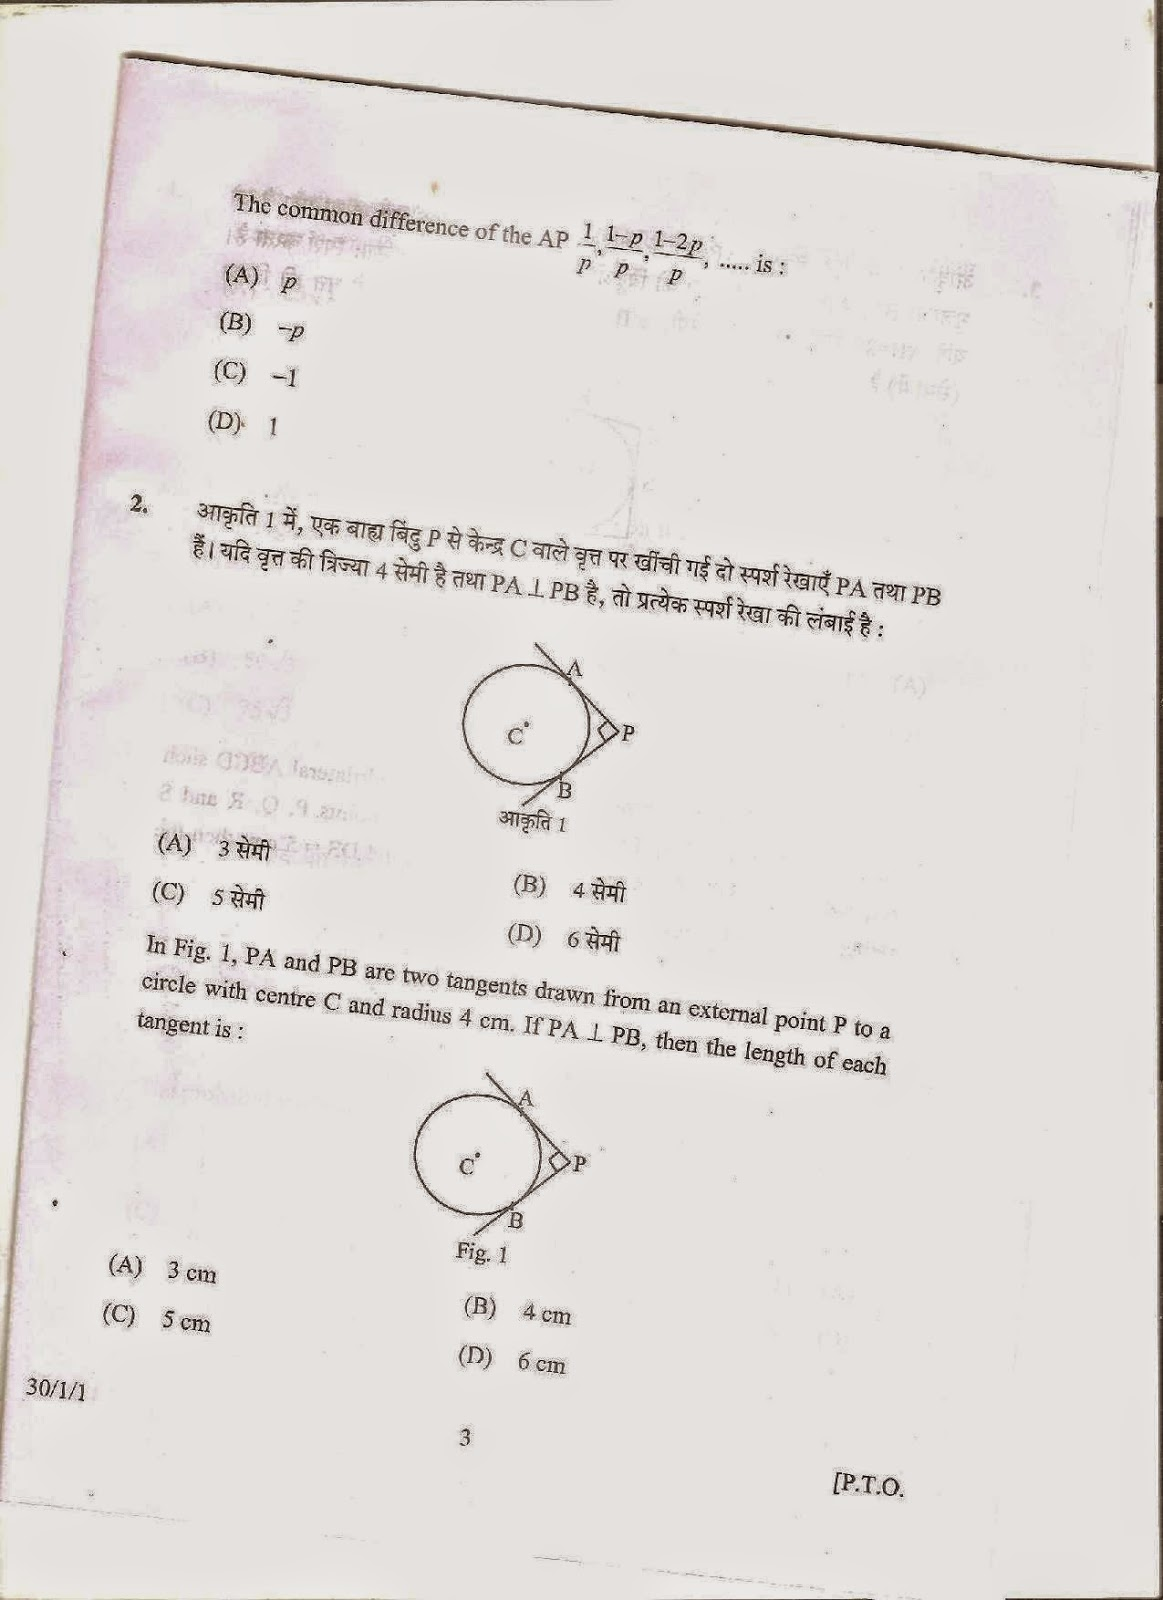 Easa part 66 essay exam - You are thinking of moving to a new